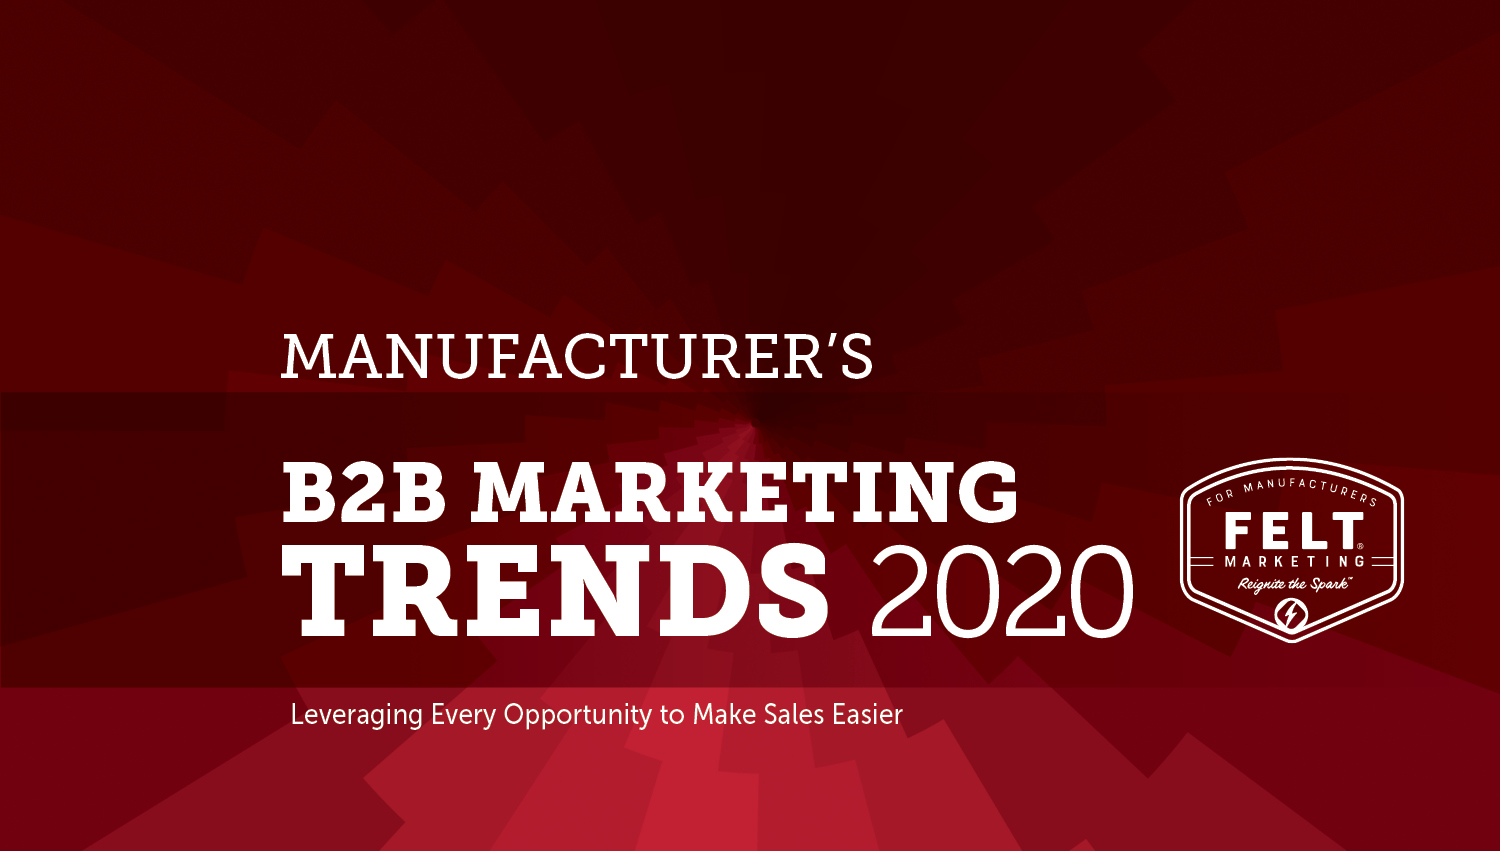 Manufacturers B2B Marketing Trends 2020